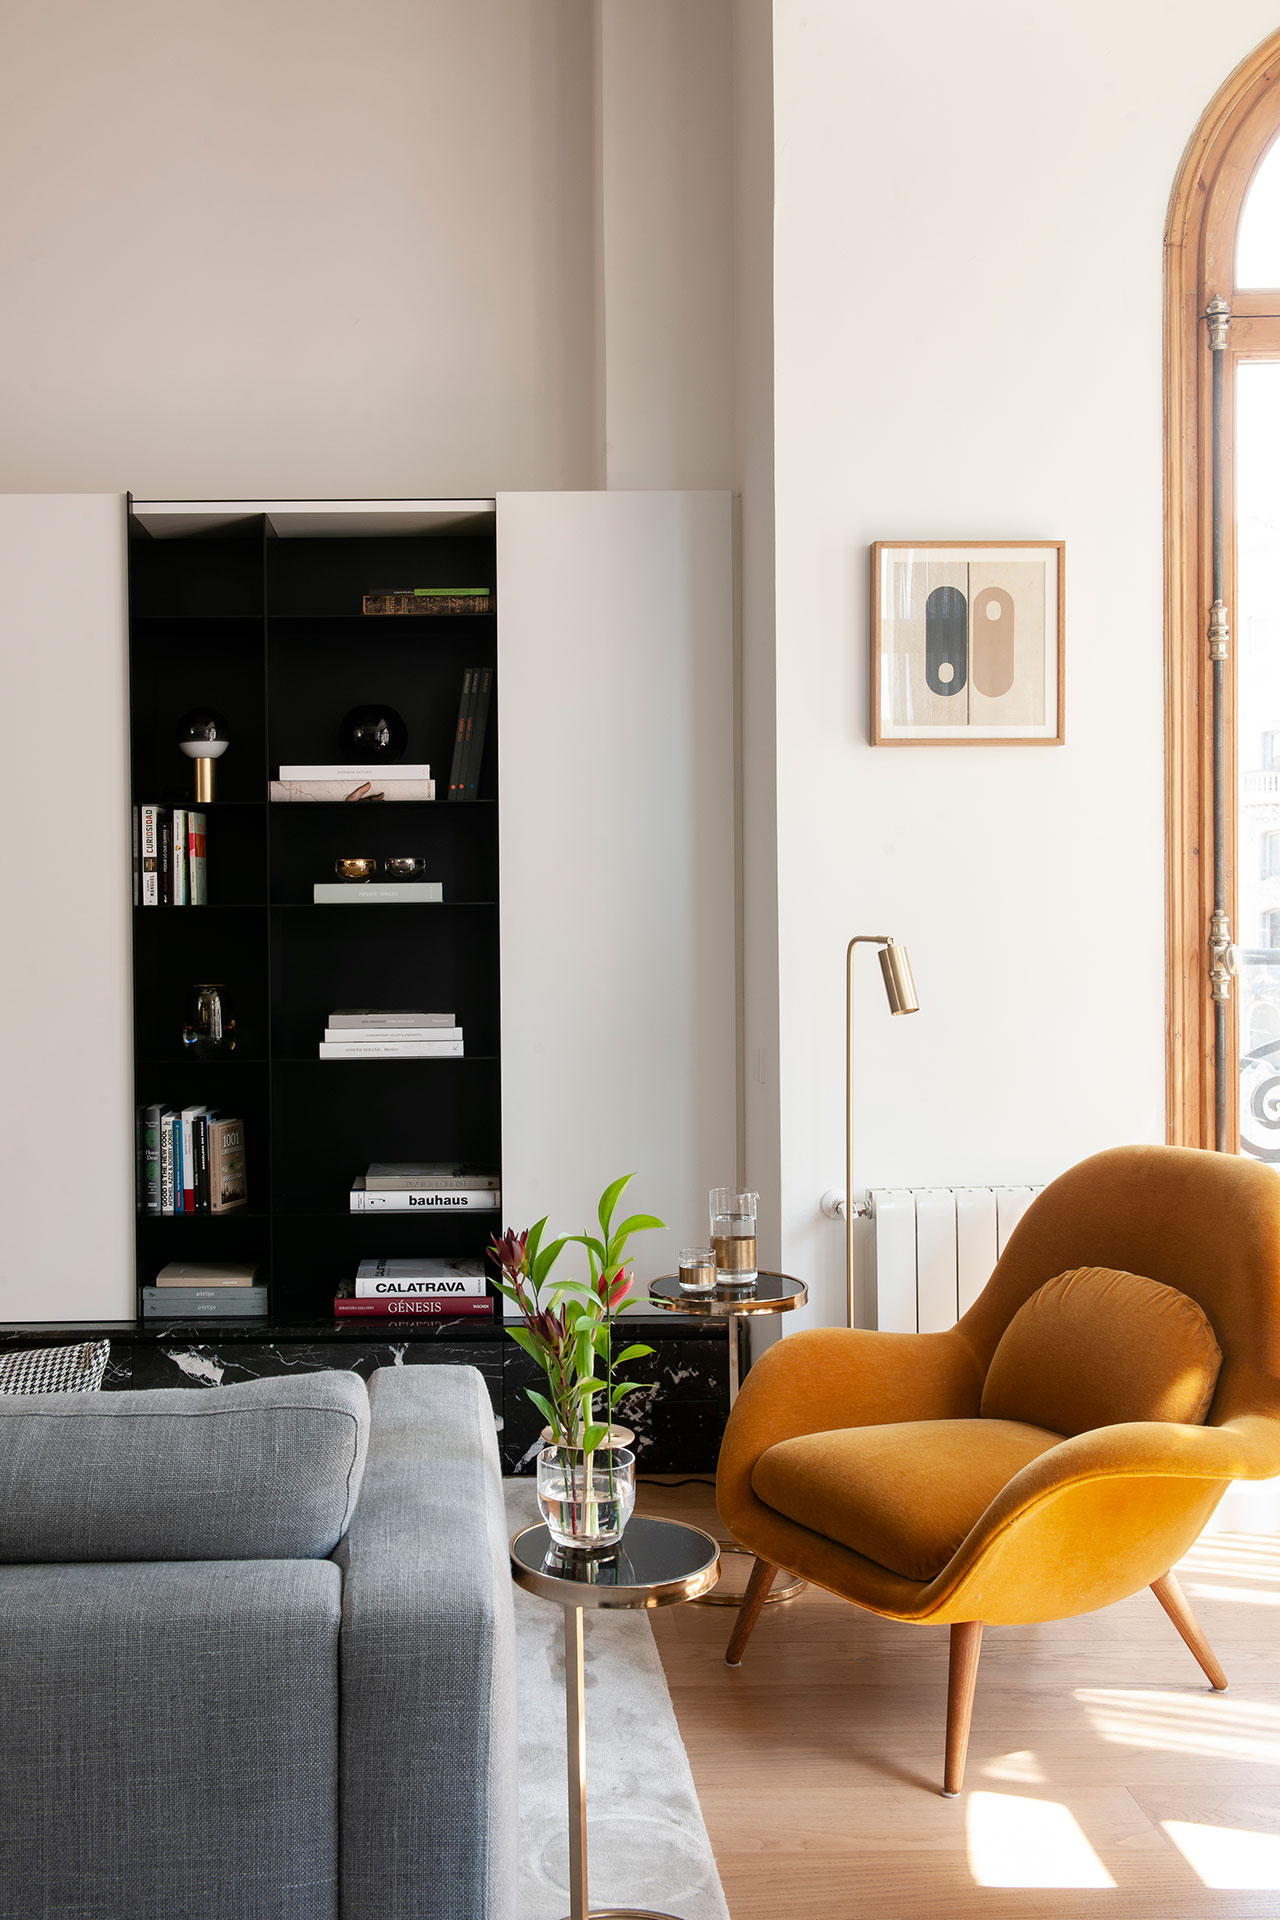 Interior Design Barcelona | Mimouca Design